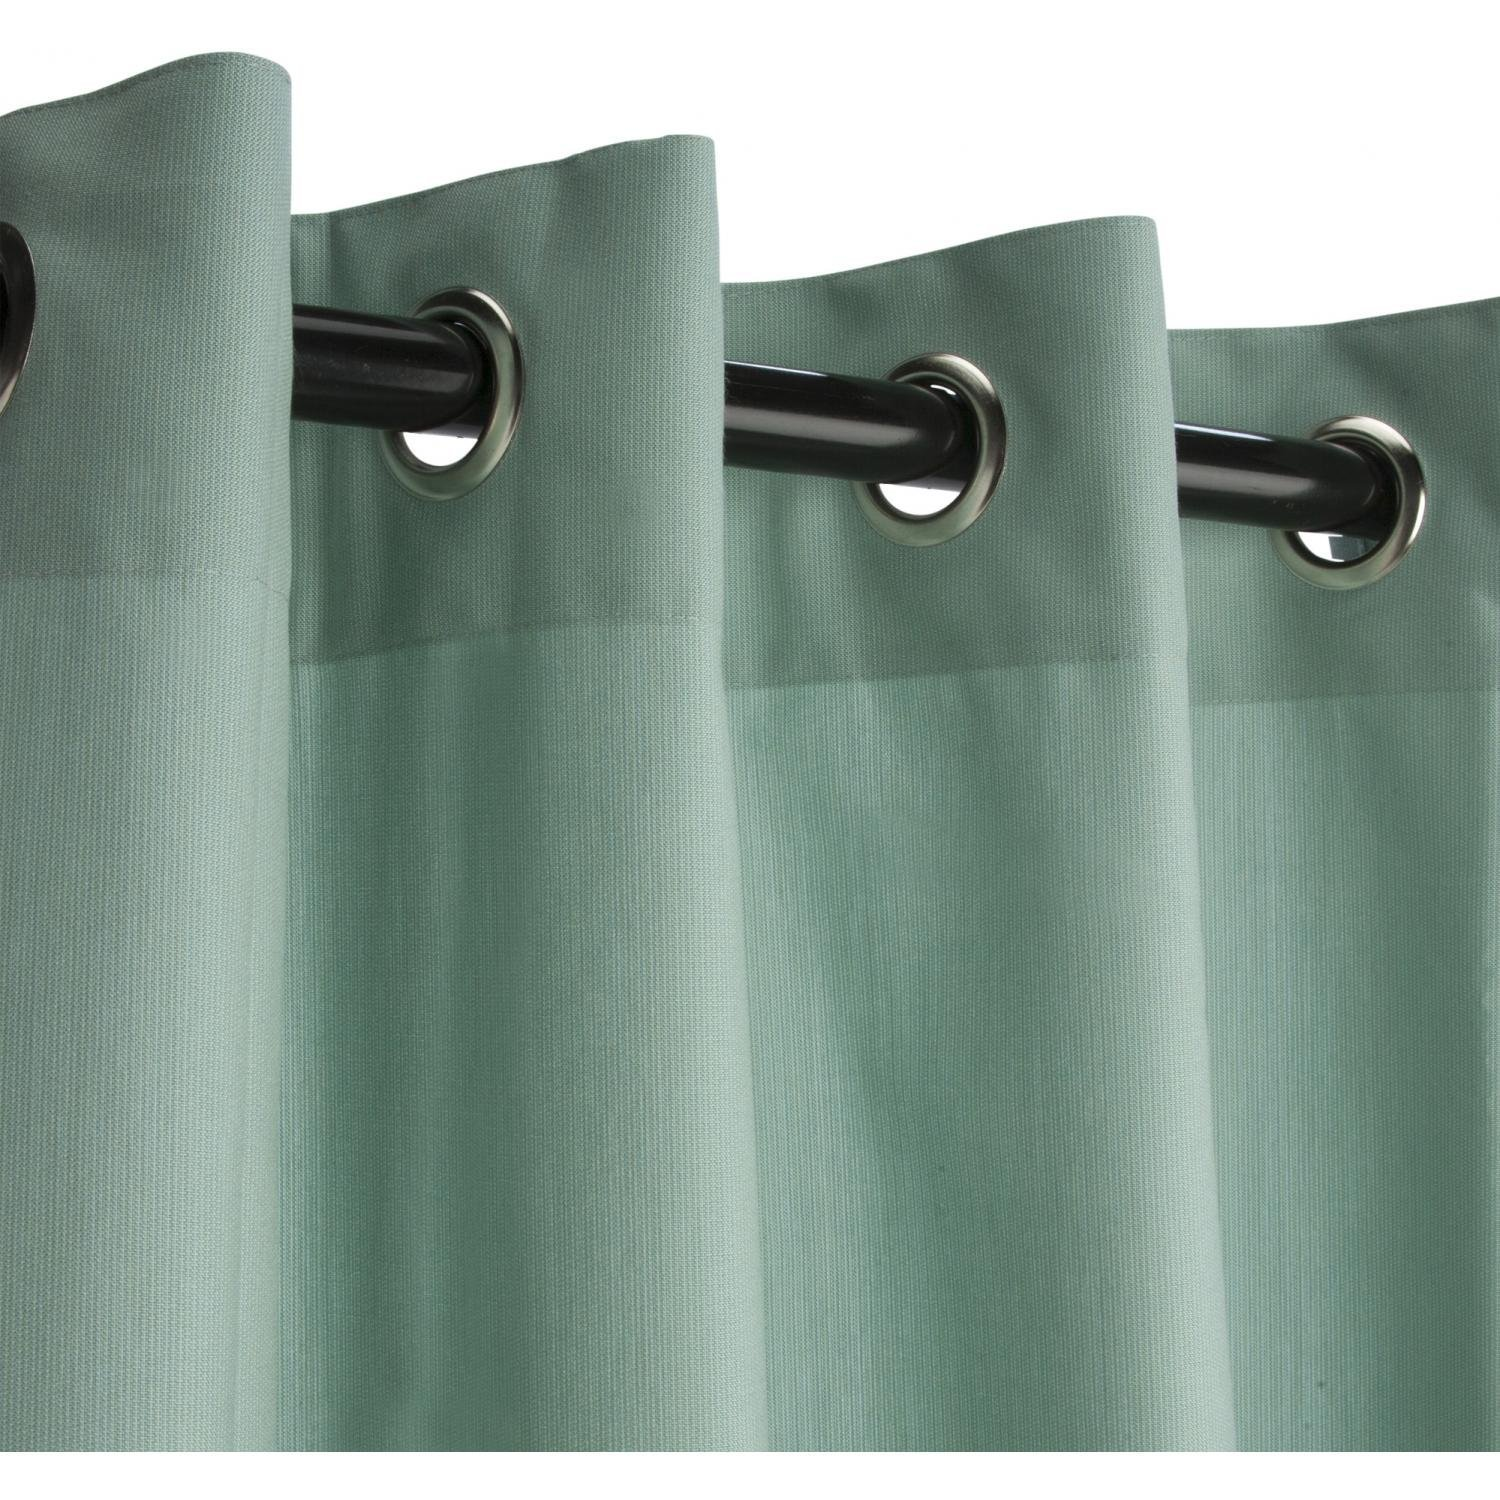 Sunbrella Outdoor Shower Curtains | Sunbrella Curtains | Sunbrella Fabric Pillows